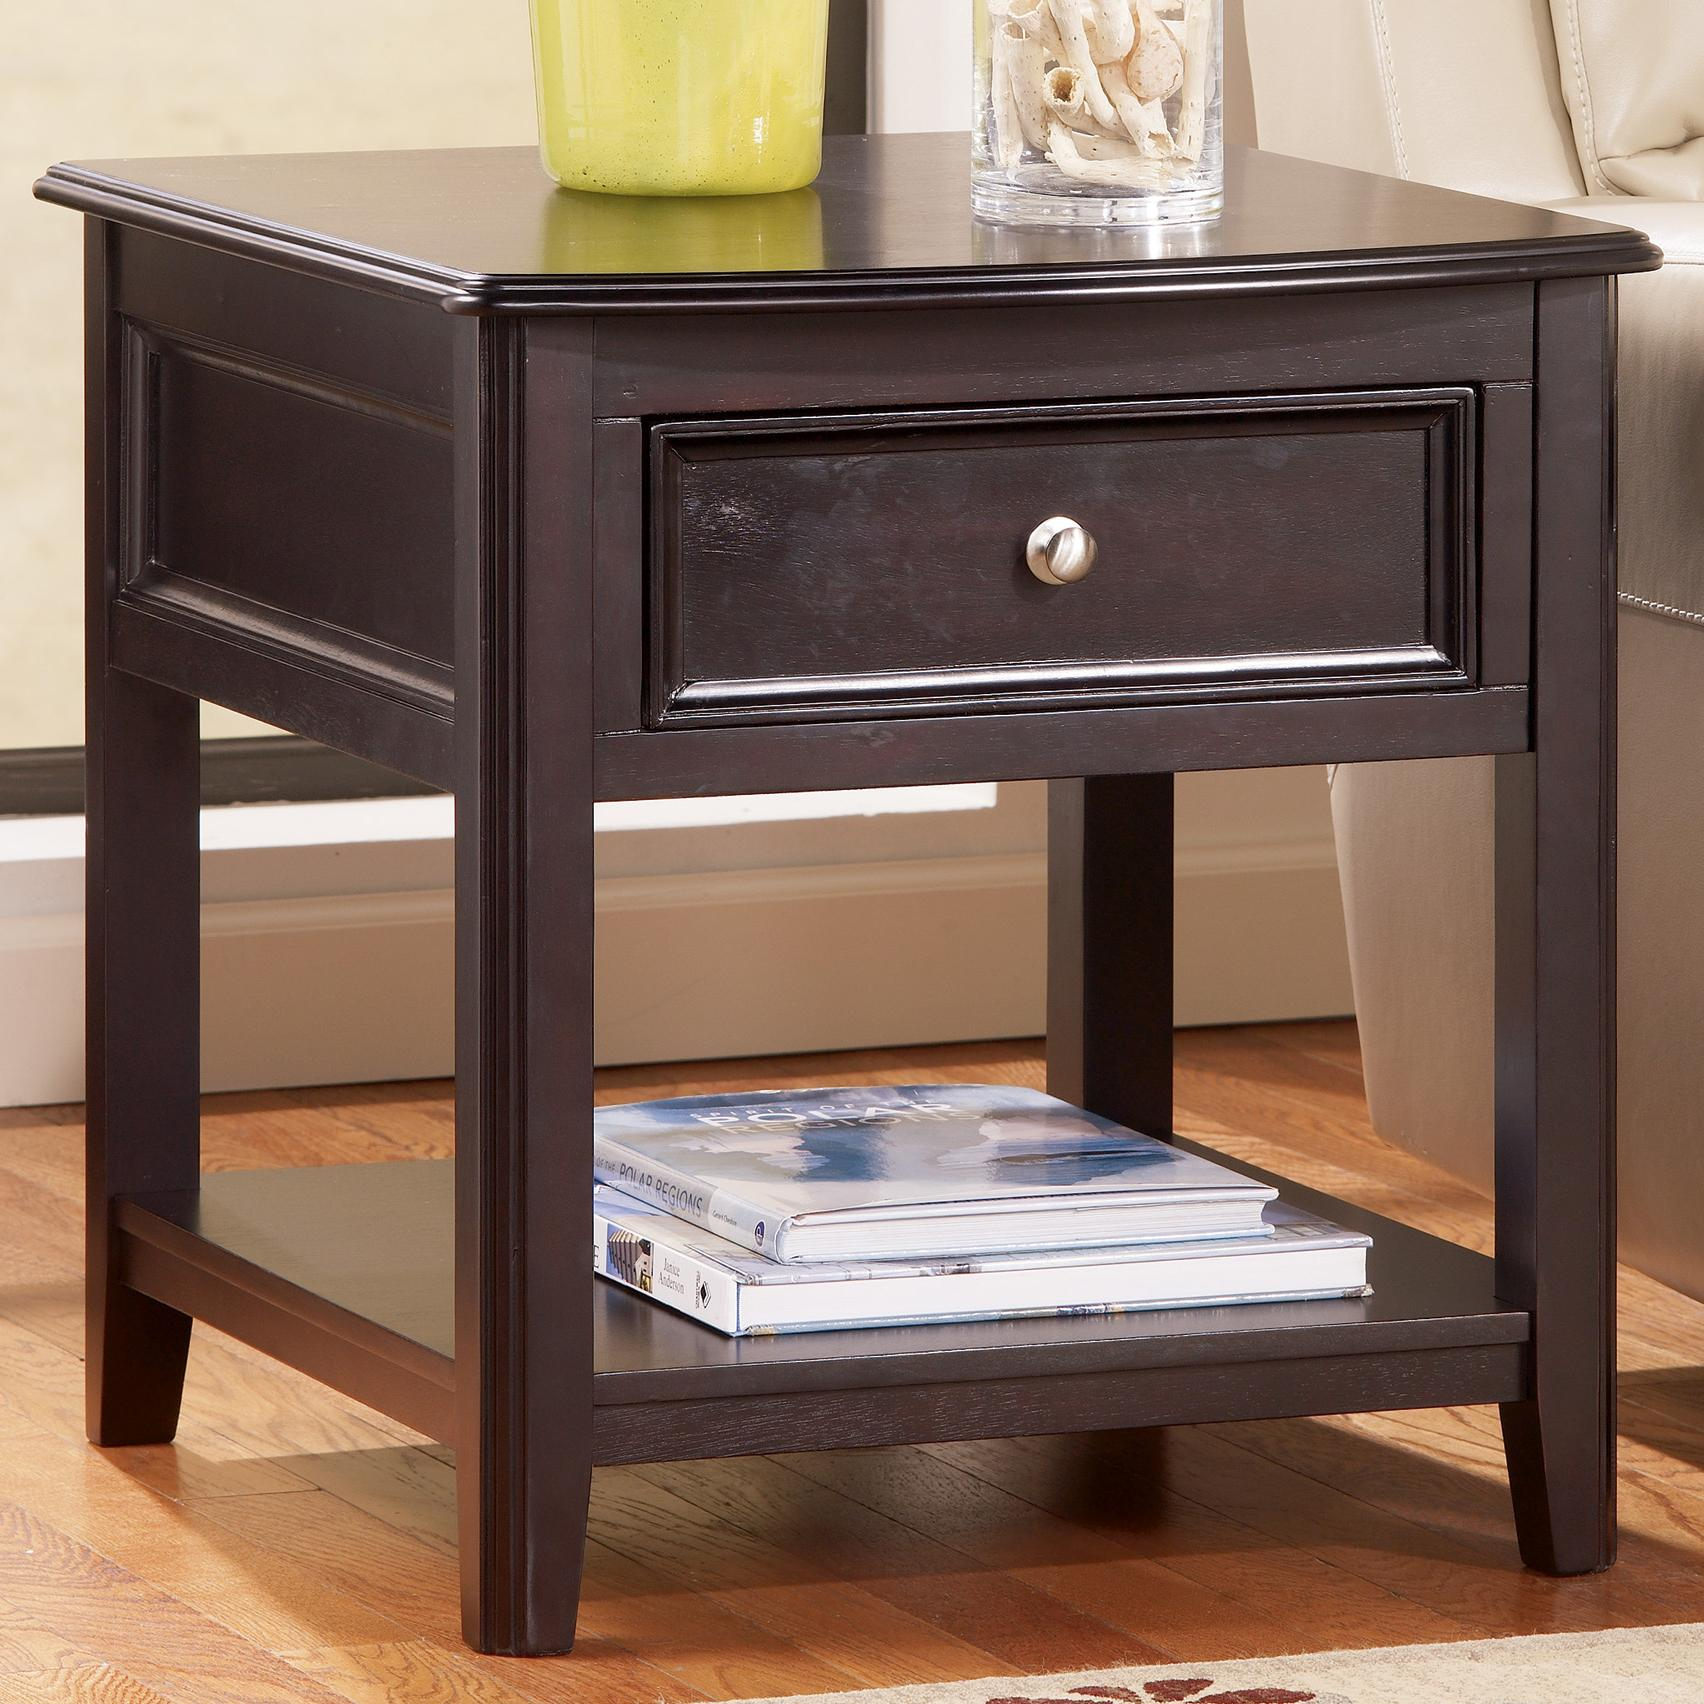 bar stools skinny walnut and square tube side tables grant winsome end table with drawers within rectangular drawer bottom shelf signature designs plans magazine rack sears wood